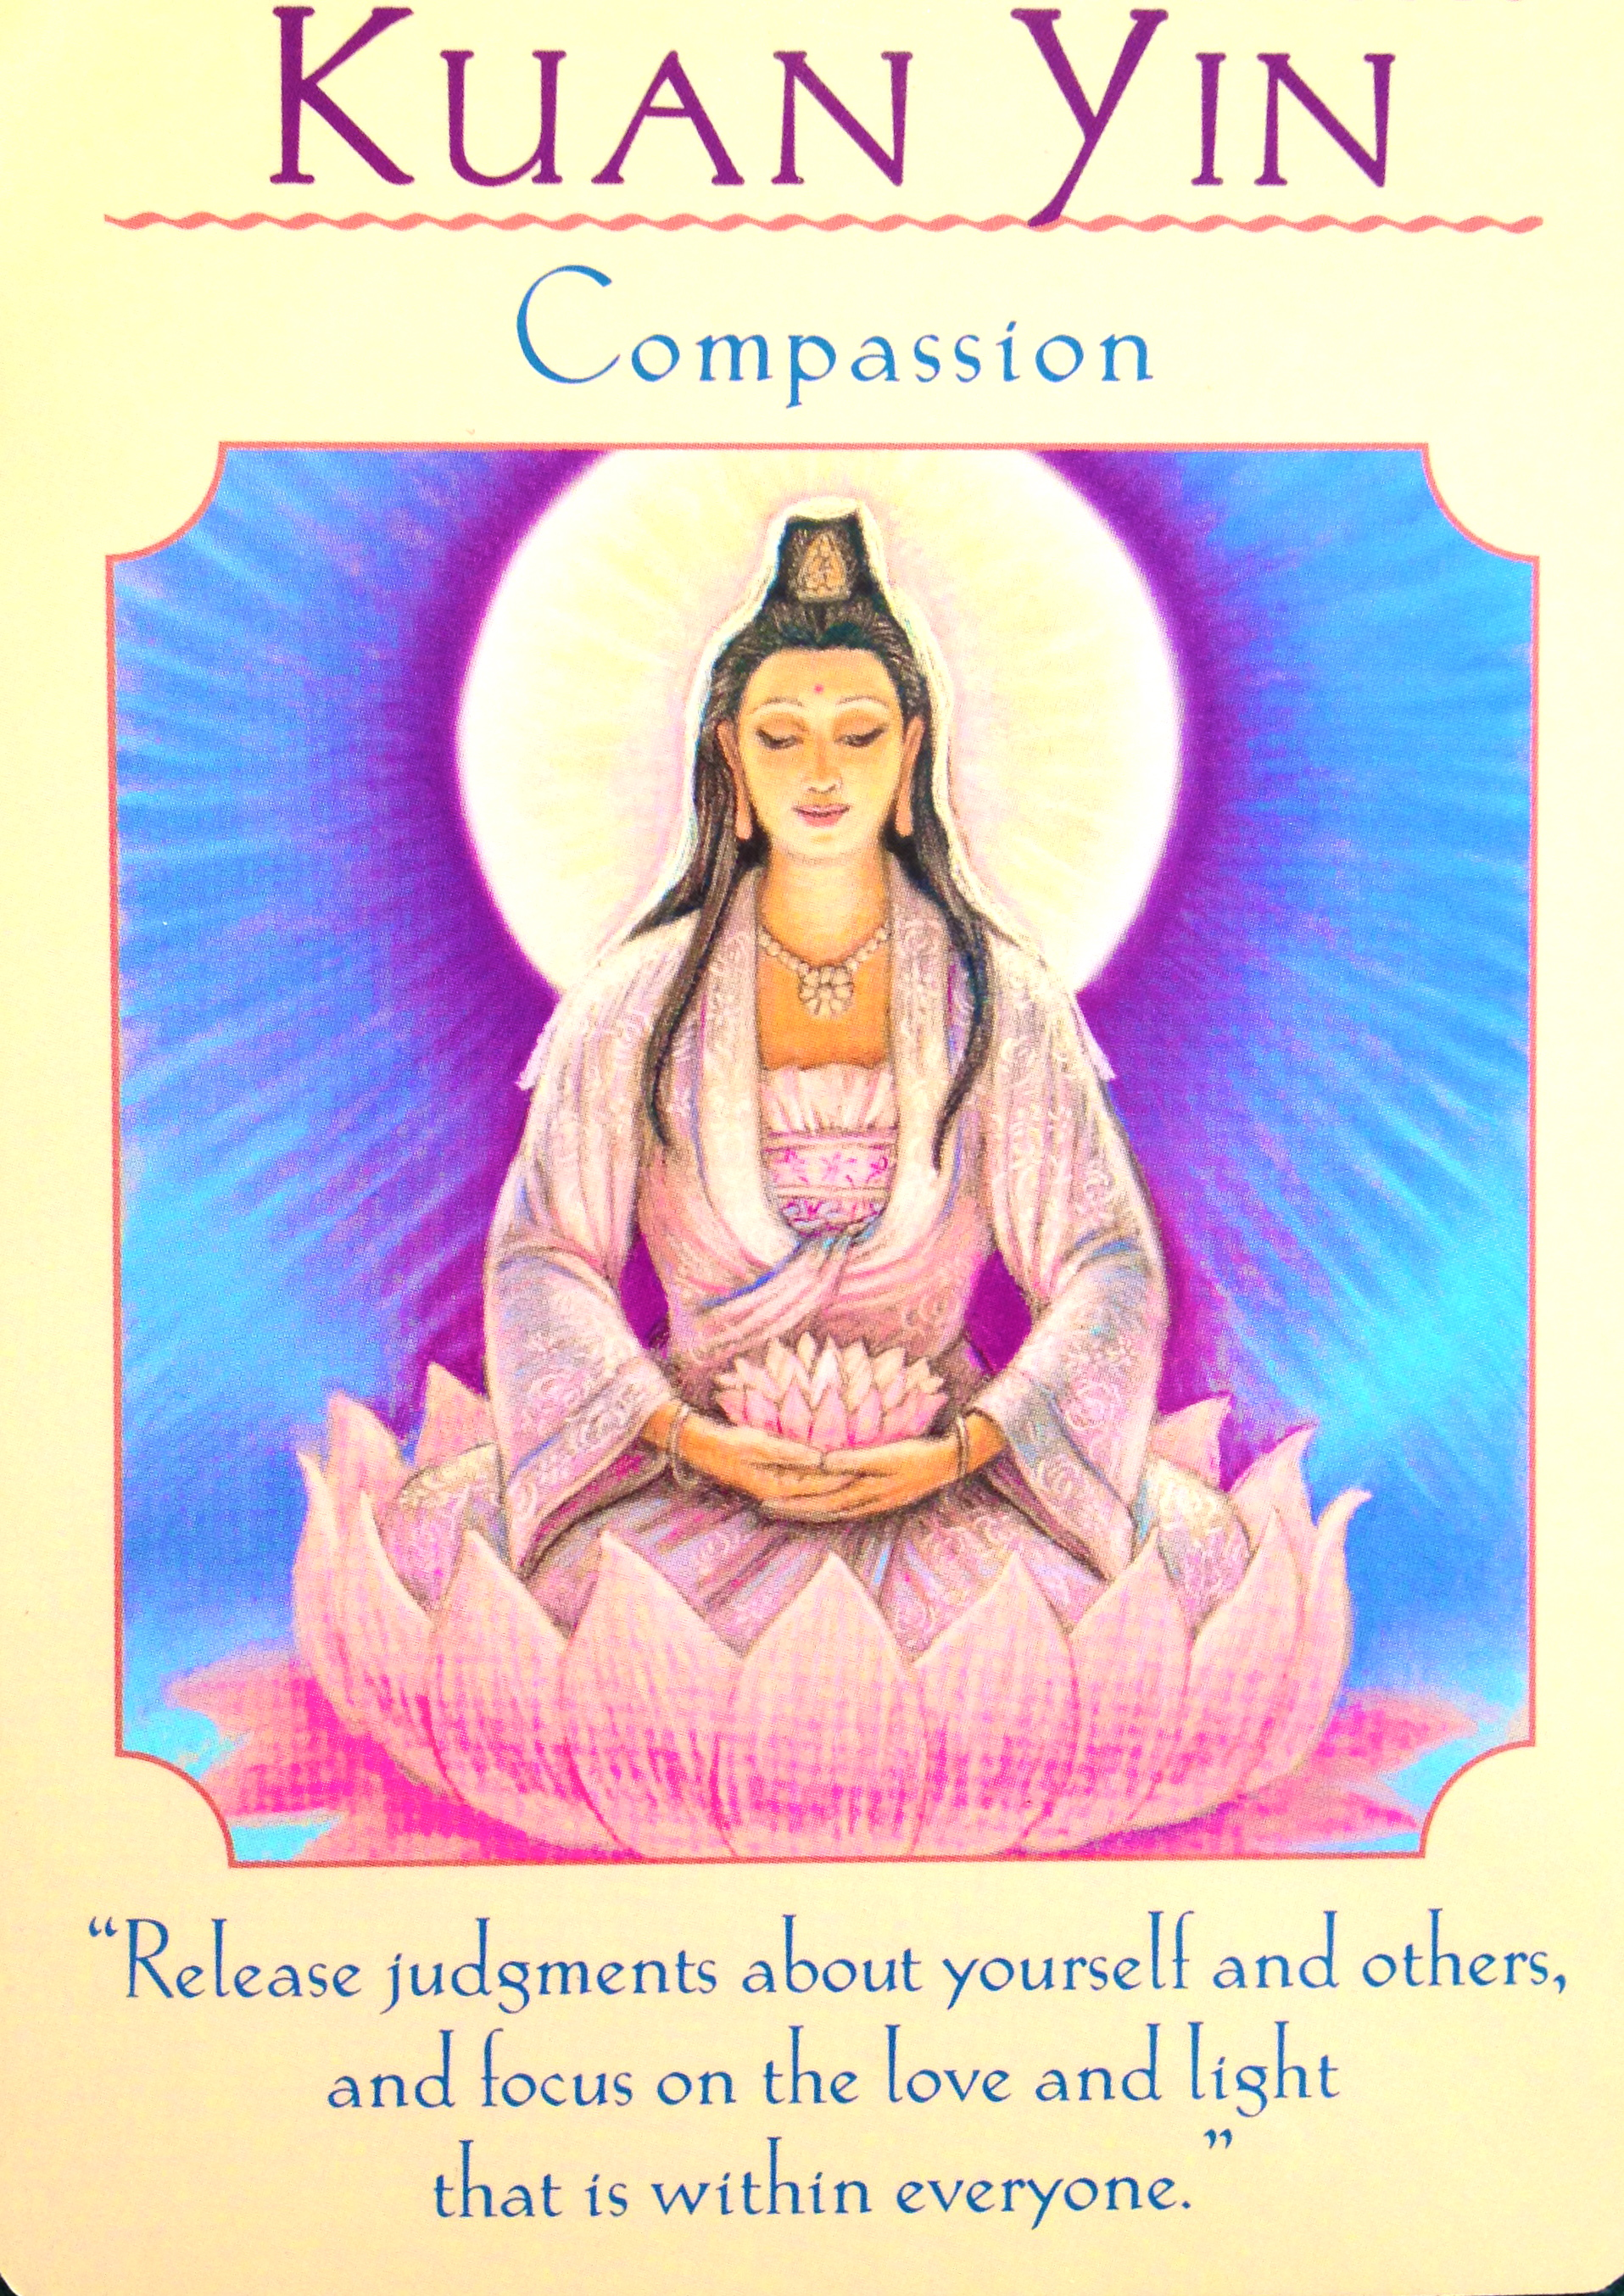 Goddess archangel oracle divine guidance page 2 kuan yin compassion from the goddess guidance oracle card deck by doreen virtue thecheapjerseys Gallery